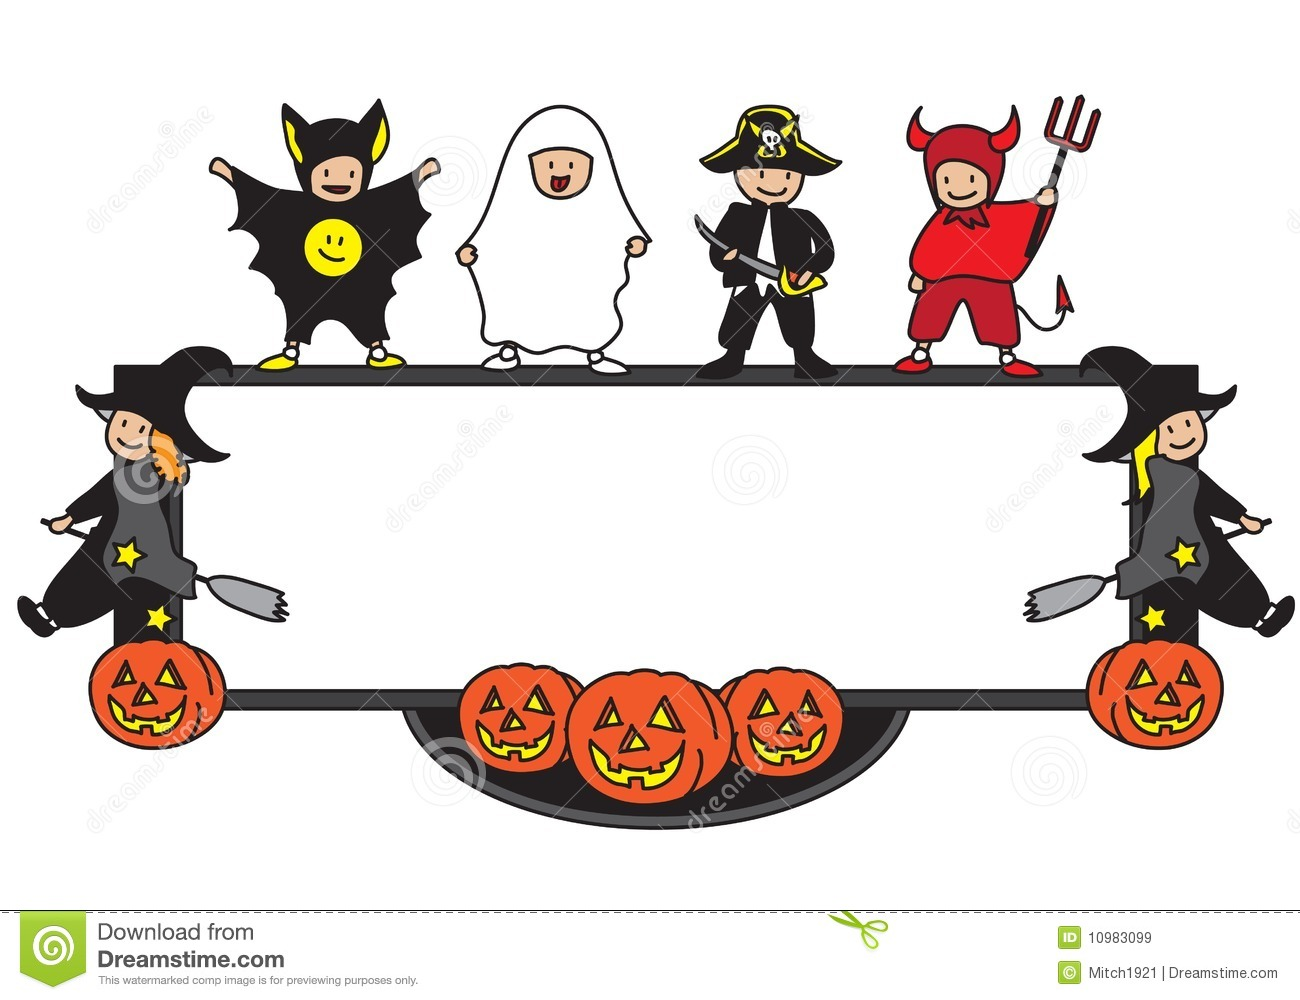 Halloween Frame Illustration 10983099 - Megapixl